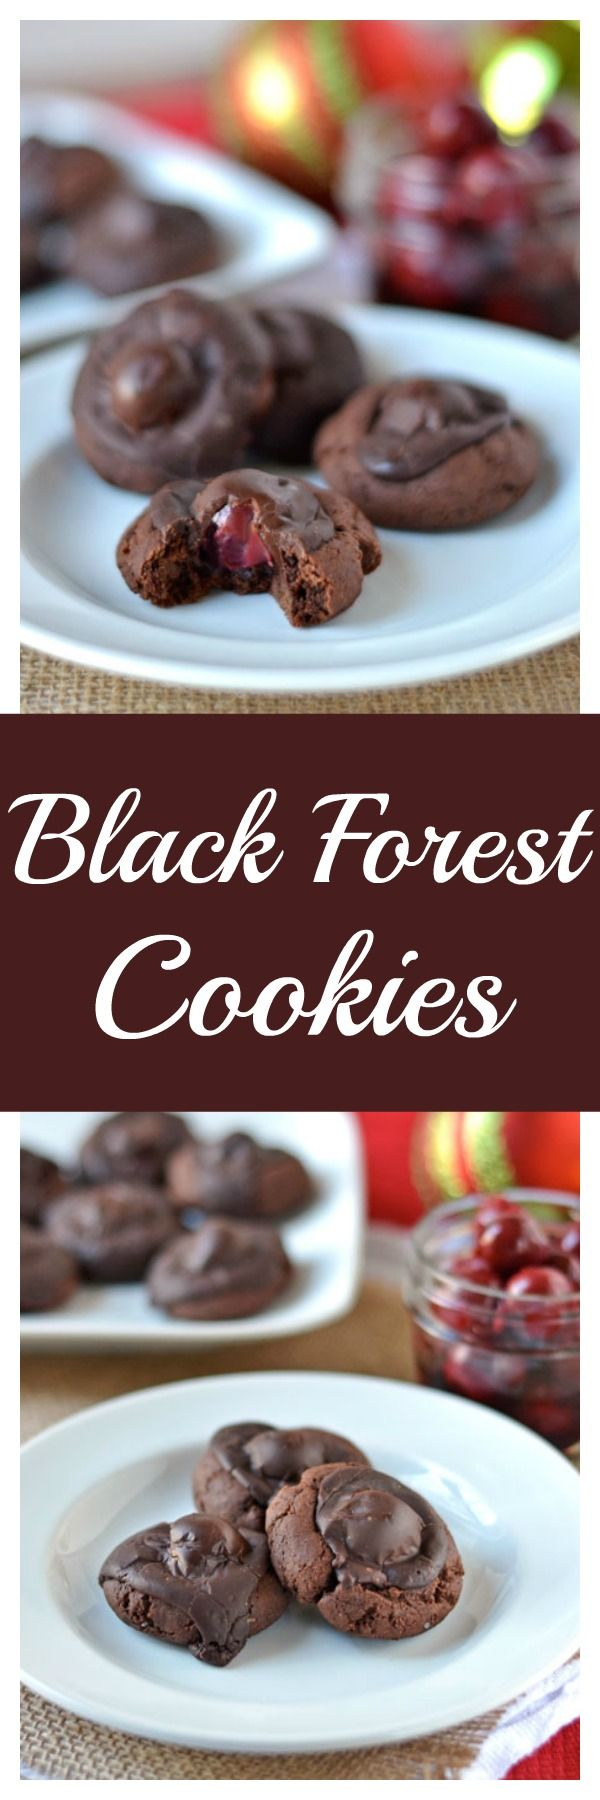 Black Forest Cookies.Soft and fudgy cookies with a hidden cherry on the inside.  A winner for any cookie exchange! (Cherry Bake Oatmeal)